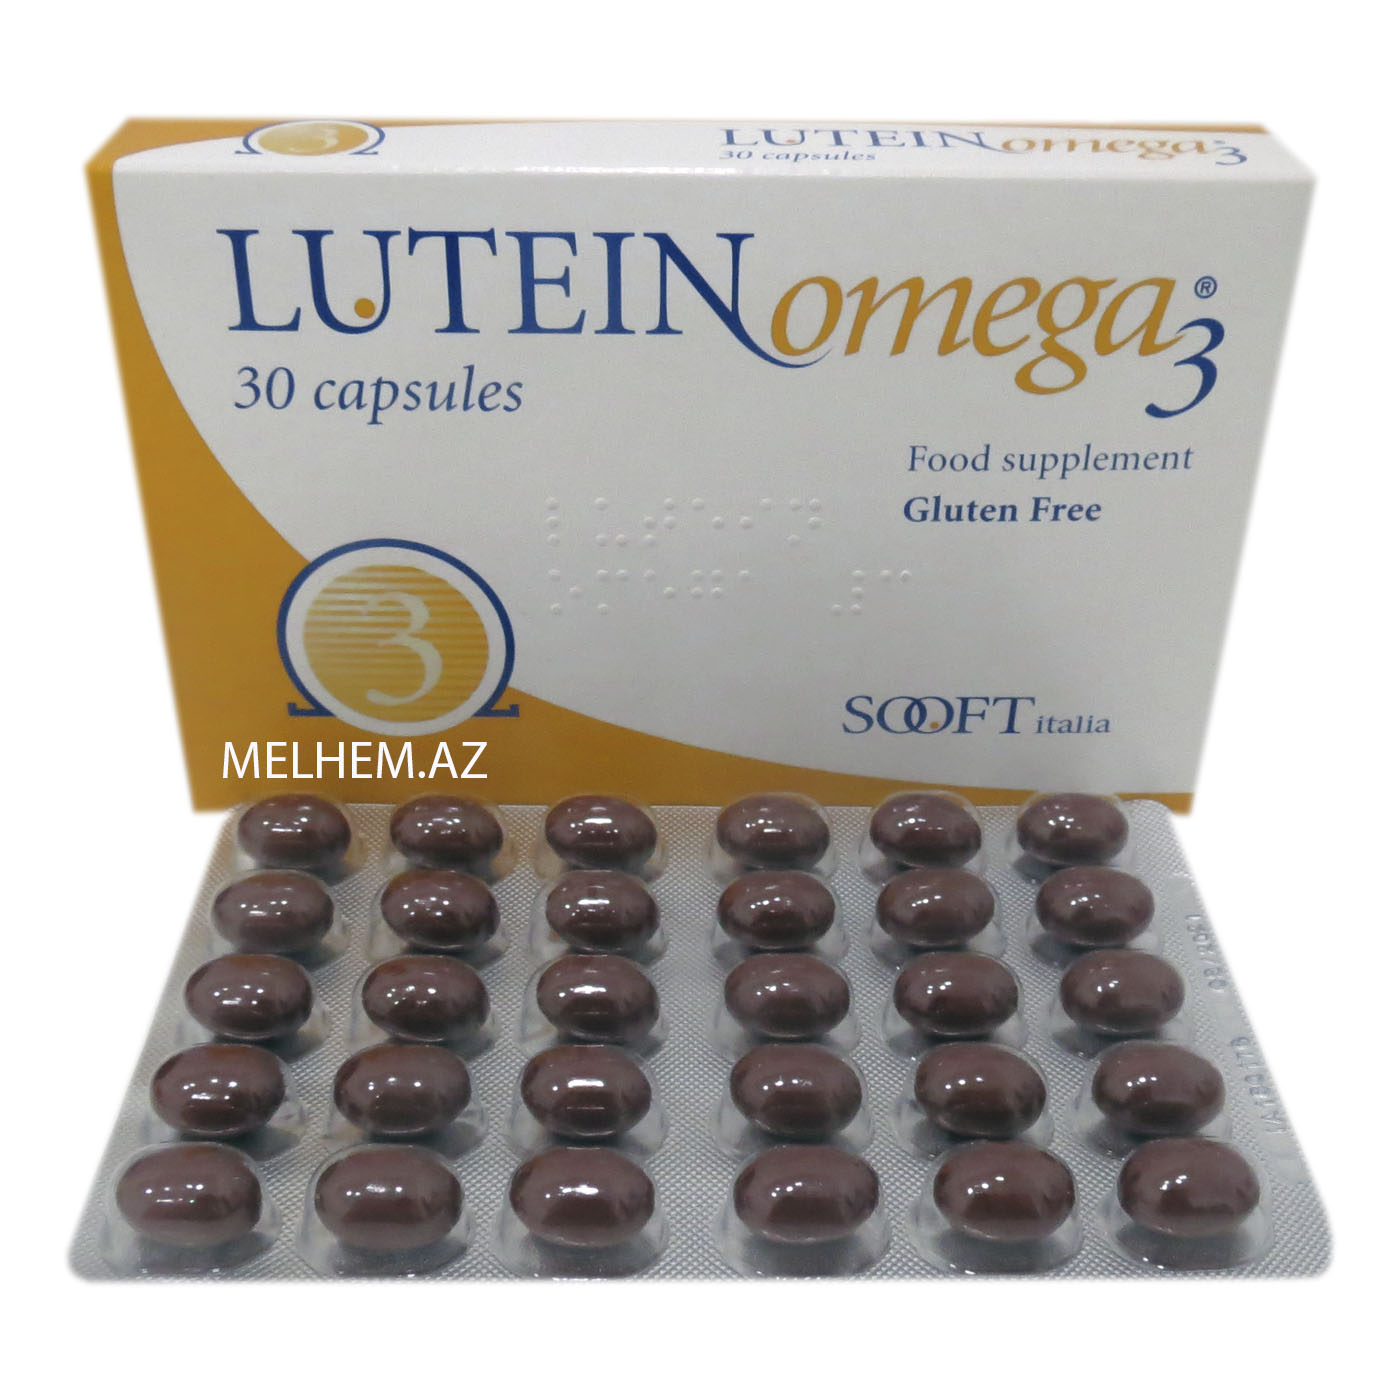 LUTEİN OMEGA 3